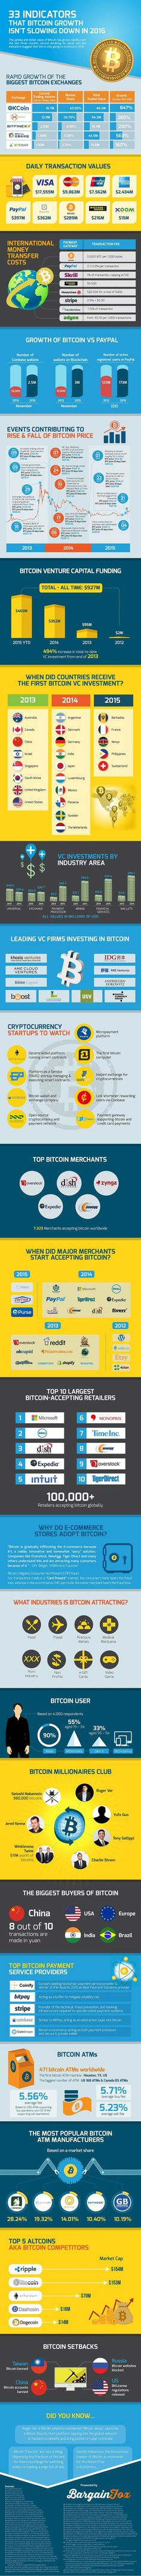 Trading infographic : Get free Bitcoins ==> freebitco.in/